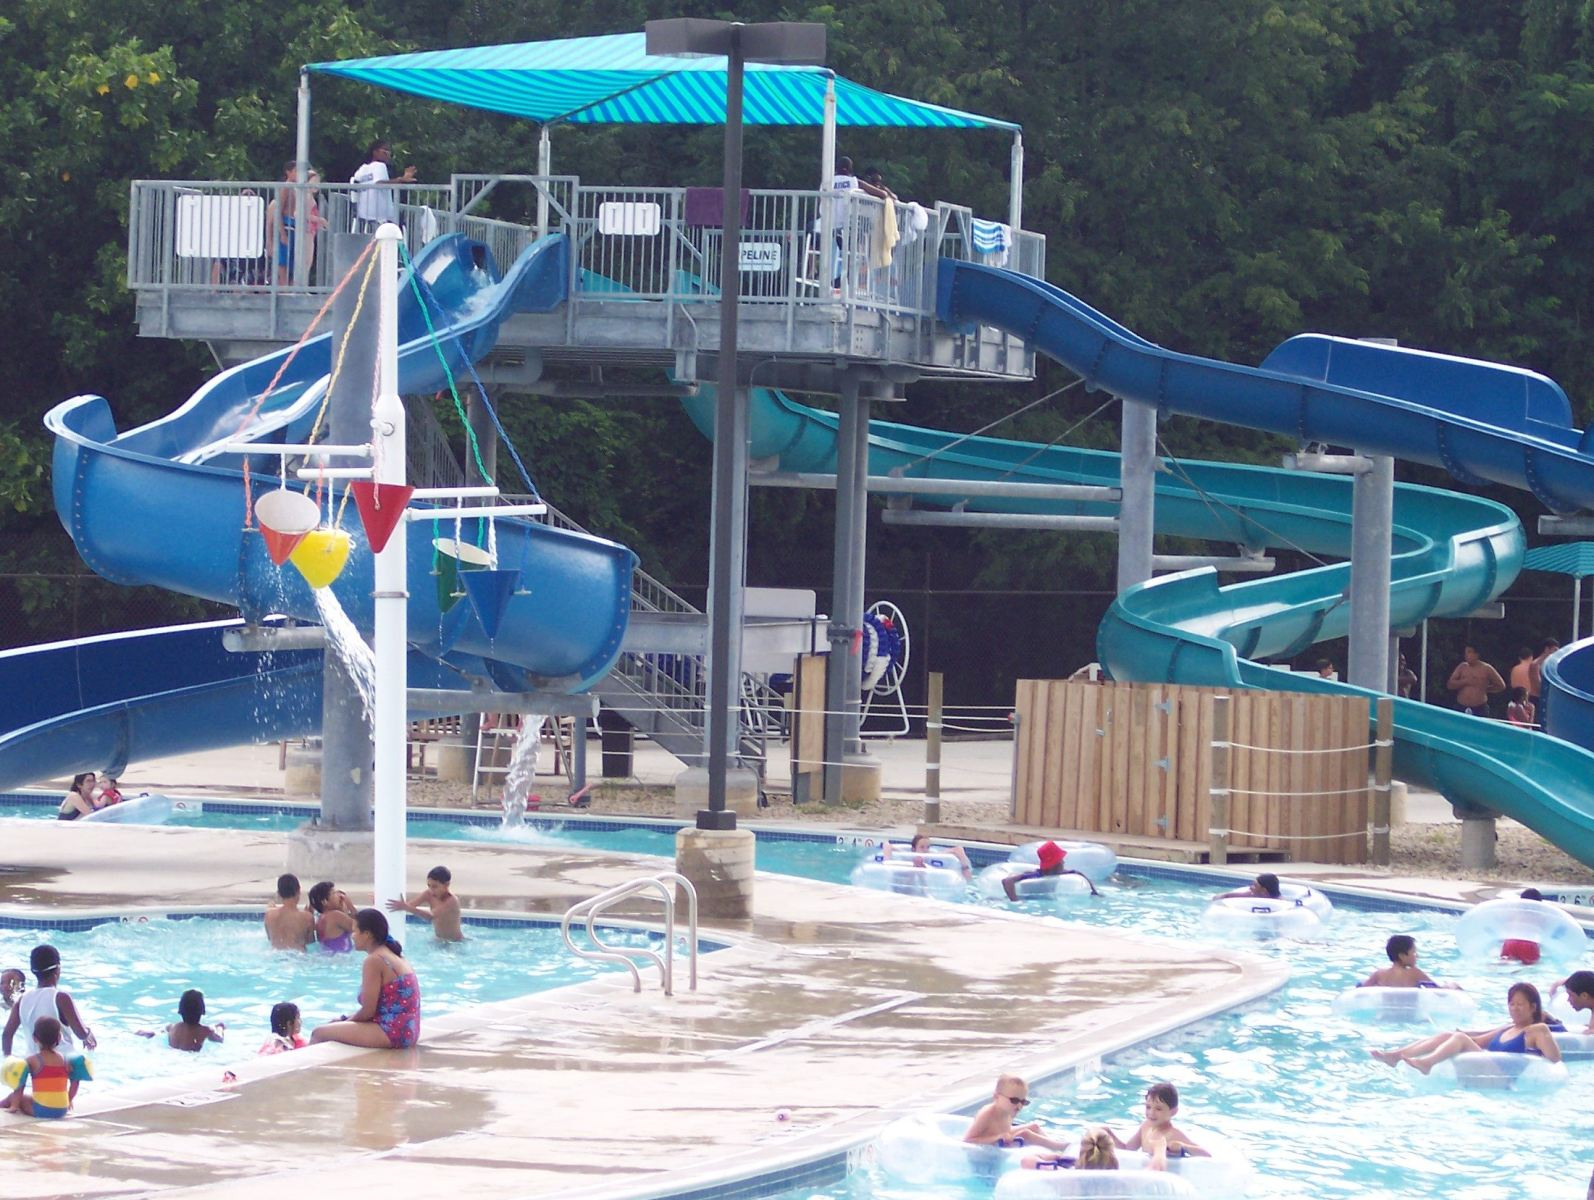 Martin Luther King Jr. Outdoor Pool